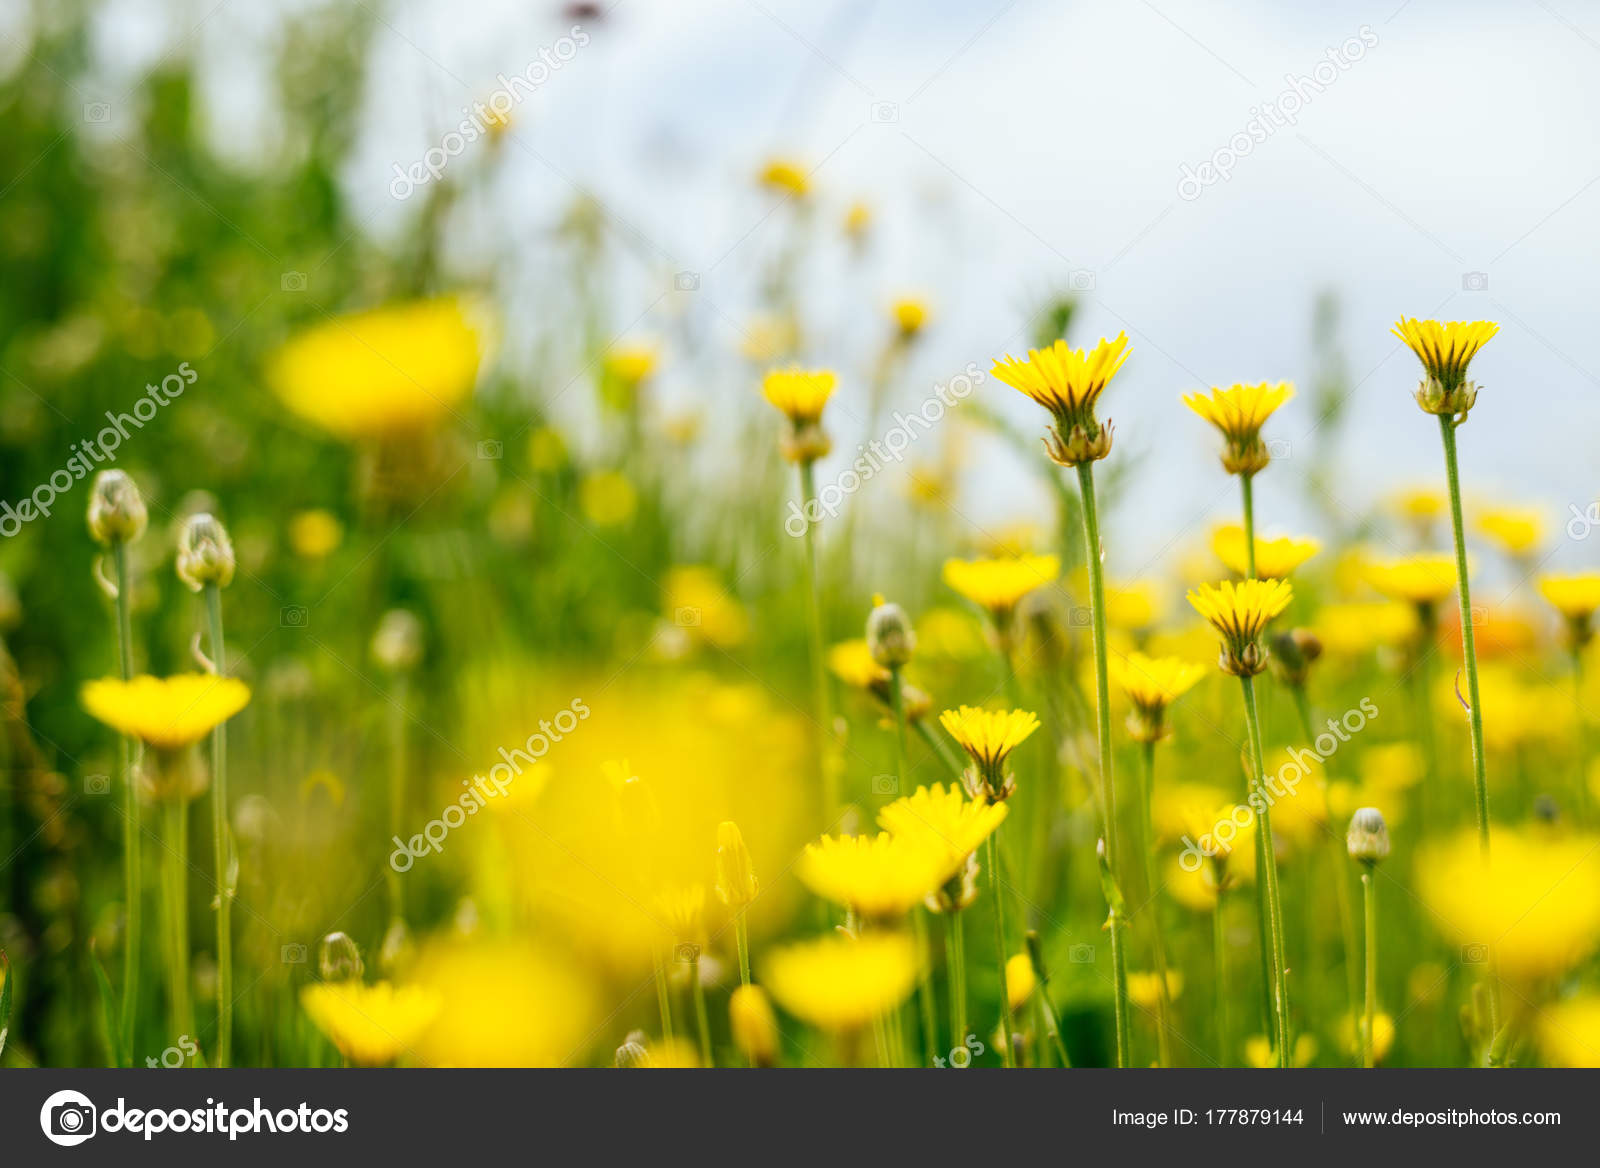 On The Endless Green Field Grow Yellow Fragrant Spring Flowers